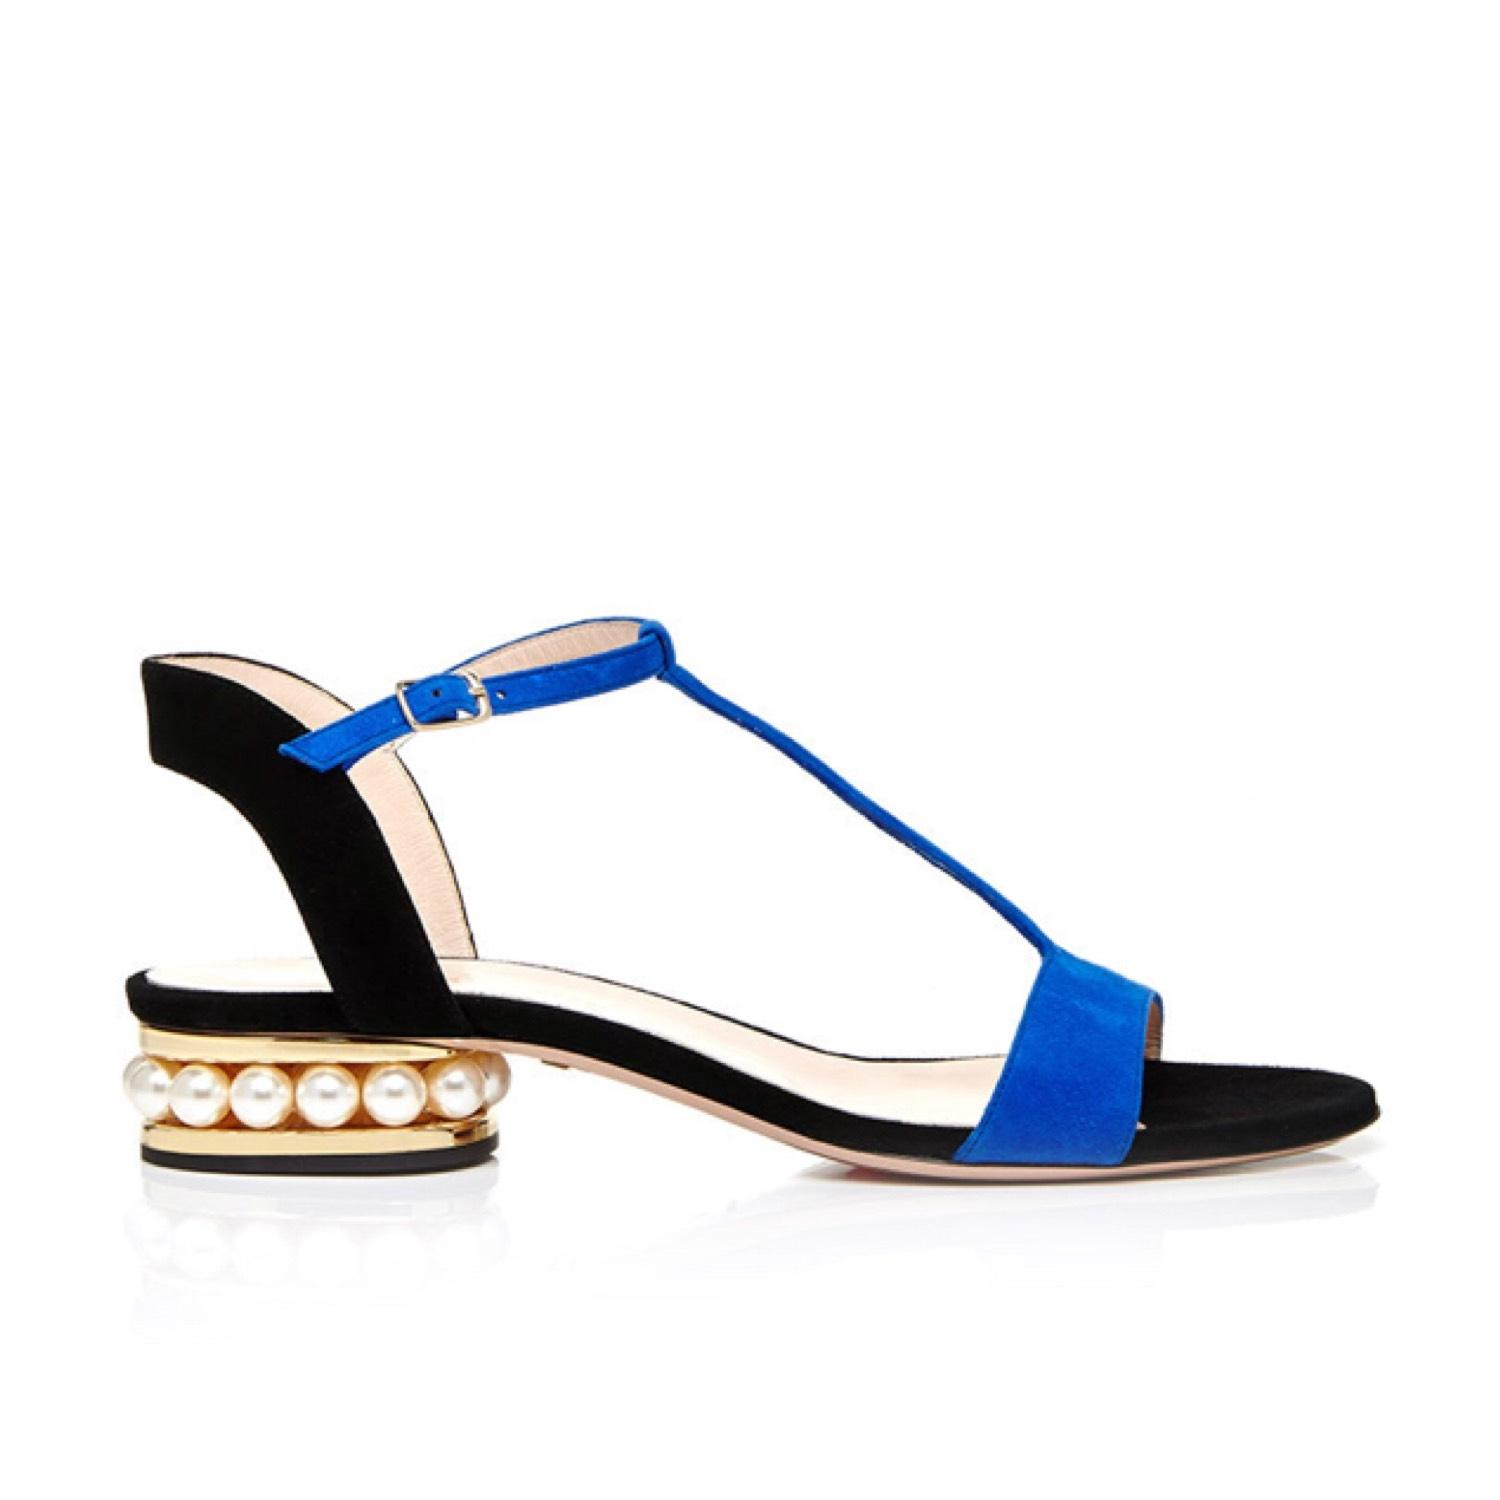 NICHOLAS KIRKWOOD Sandals cheap supply best store to get online cheap buy outlet brand new unisex discount for cheap yAXexV